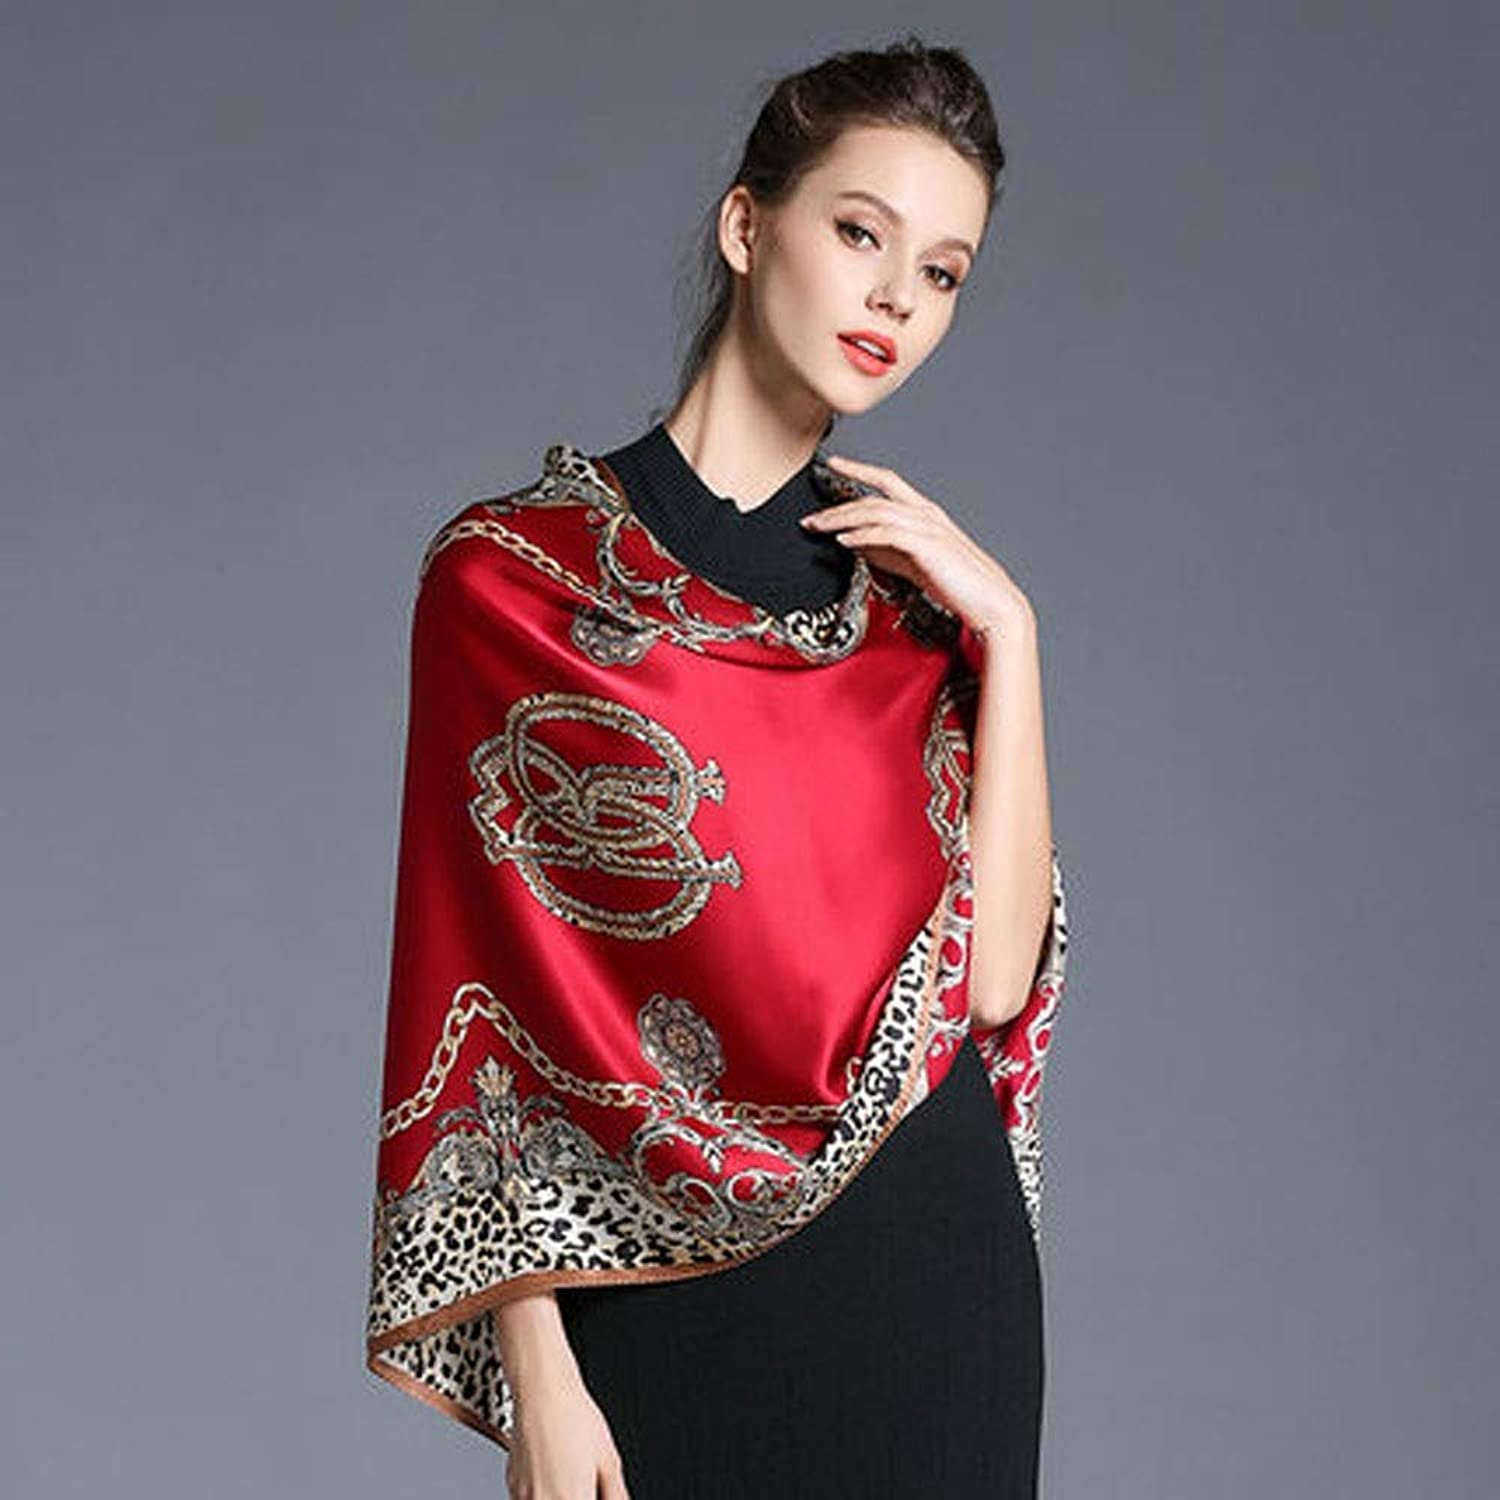 AINIYF Silk Scarf Square Scarf for Hair Women 100% Pure Silk Hand Rolling Edge Silk Twill Scarf for Women 70.87x25.6inches (color   A3)